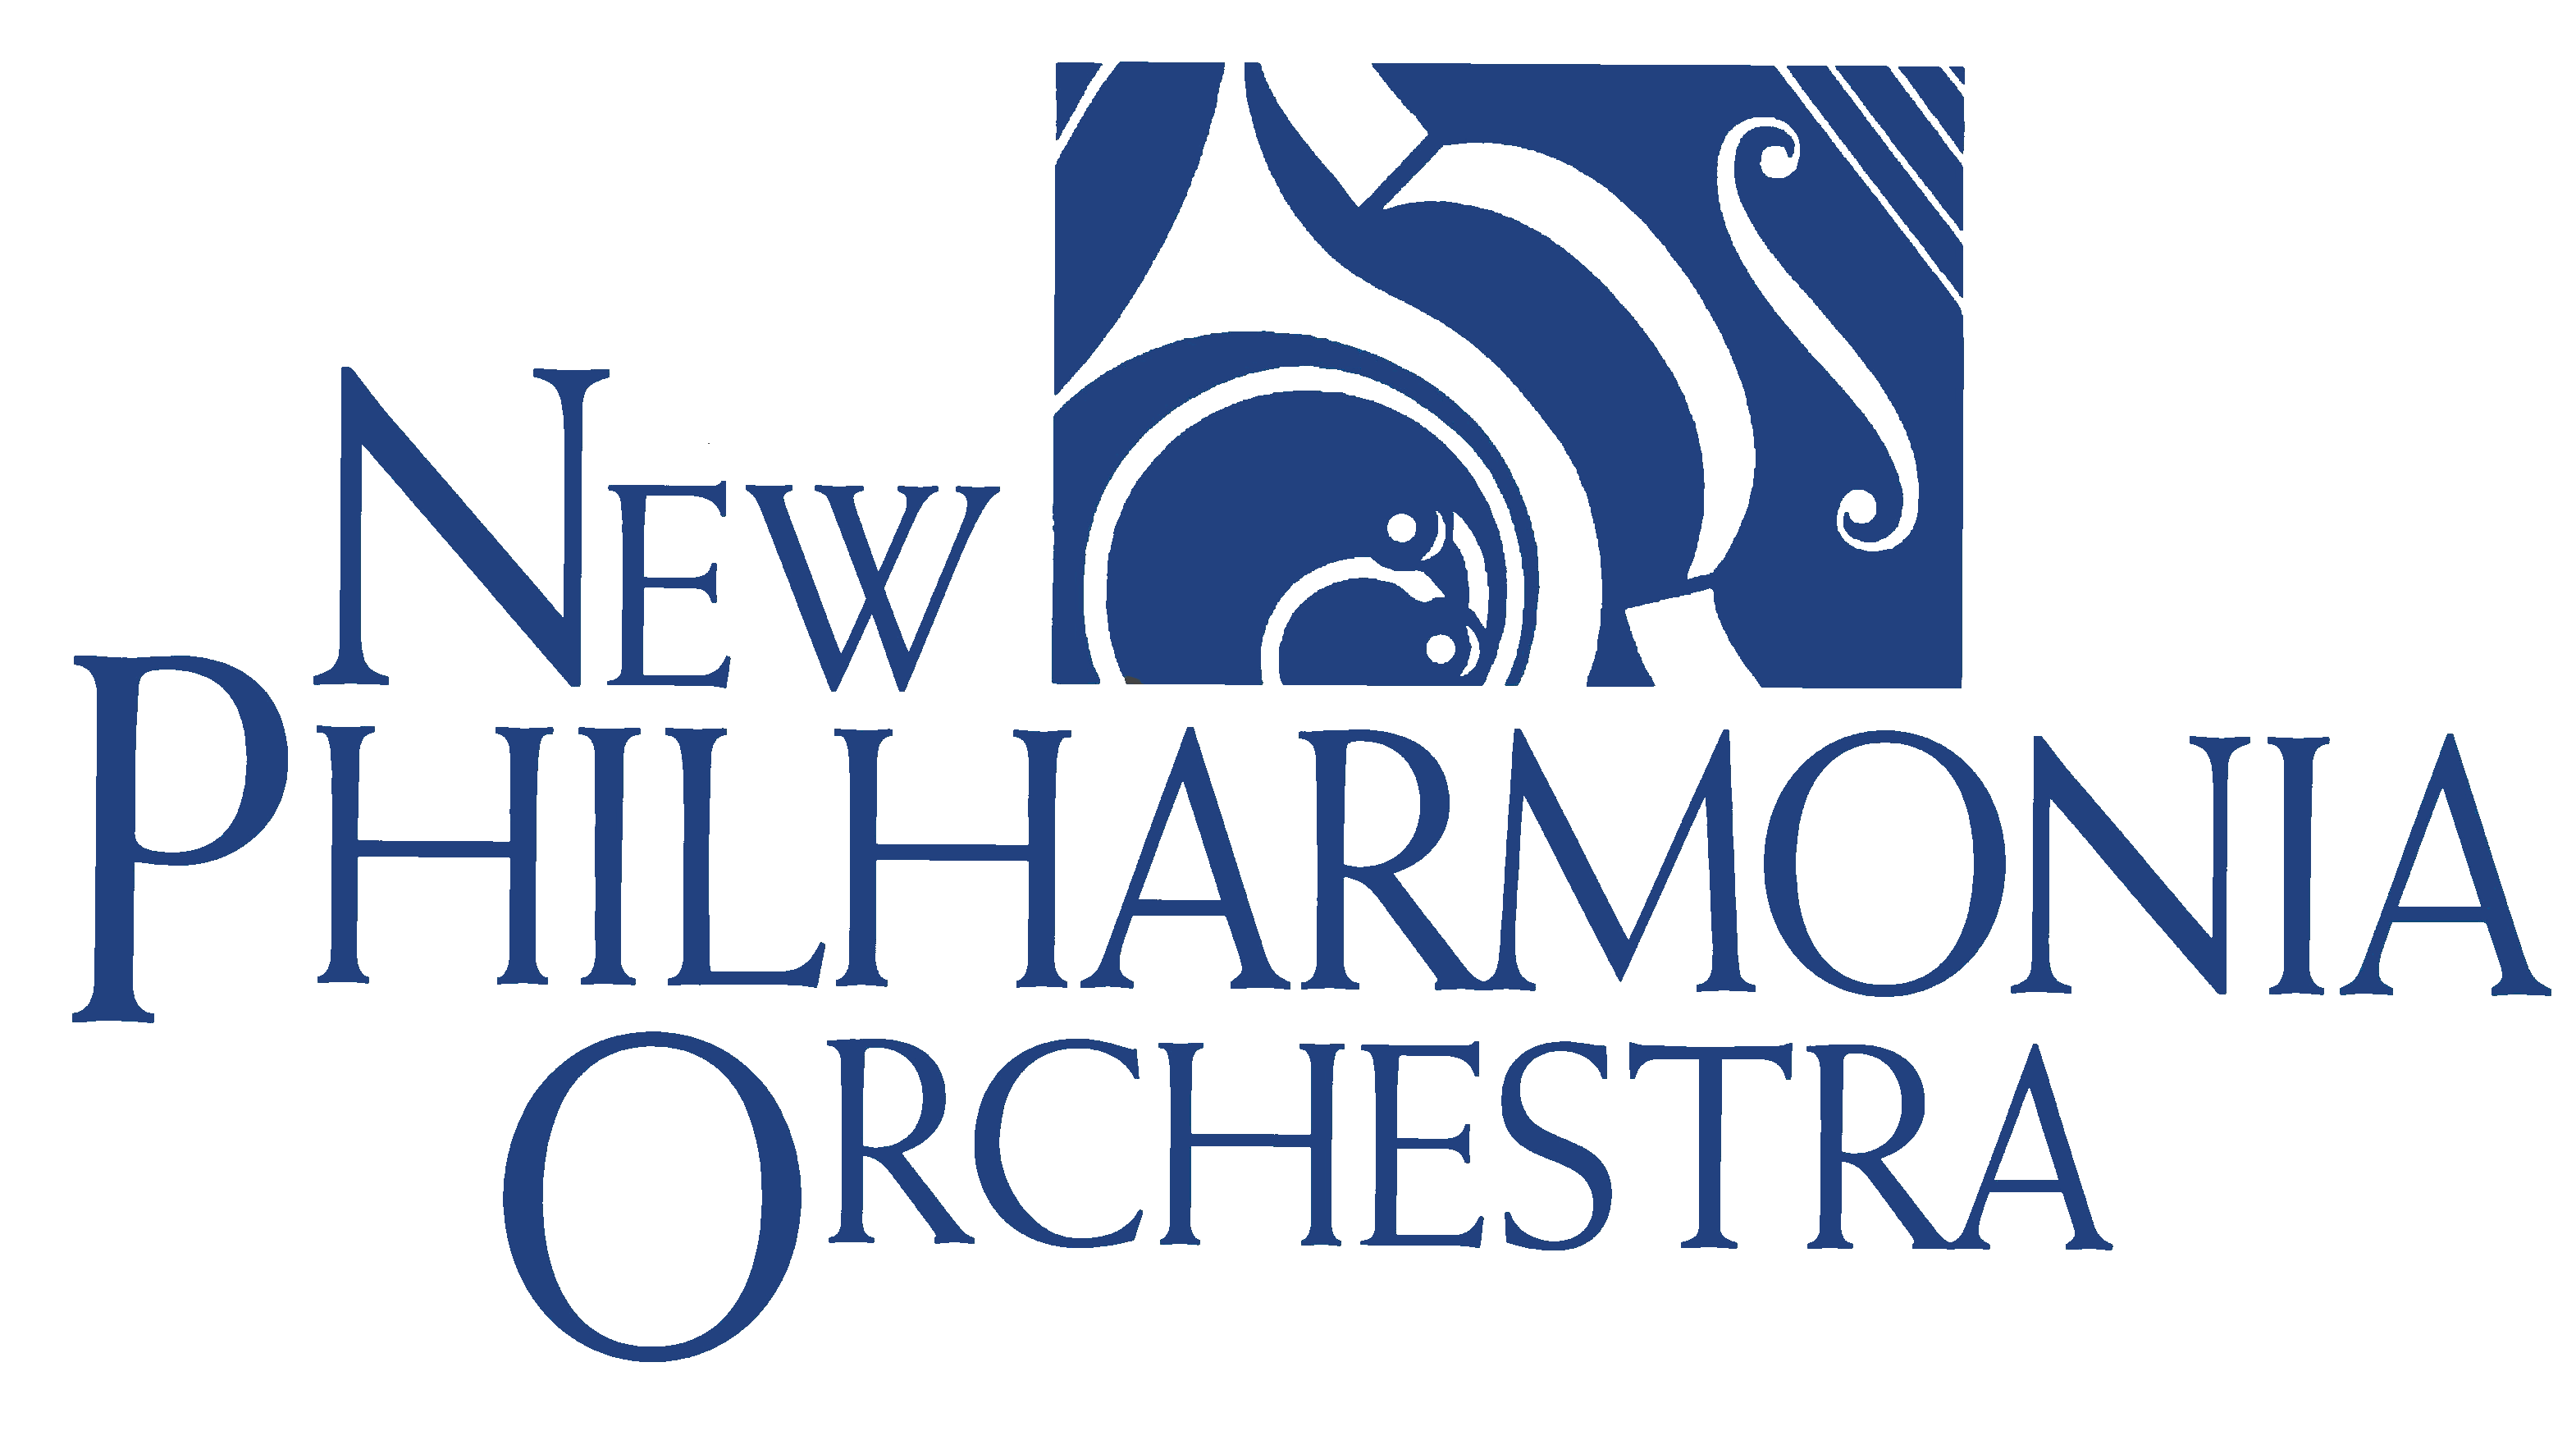 New Philharmonia Orchestra